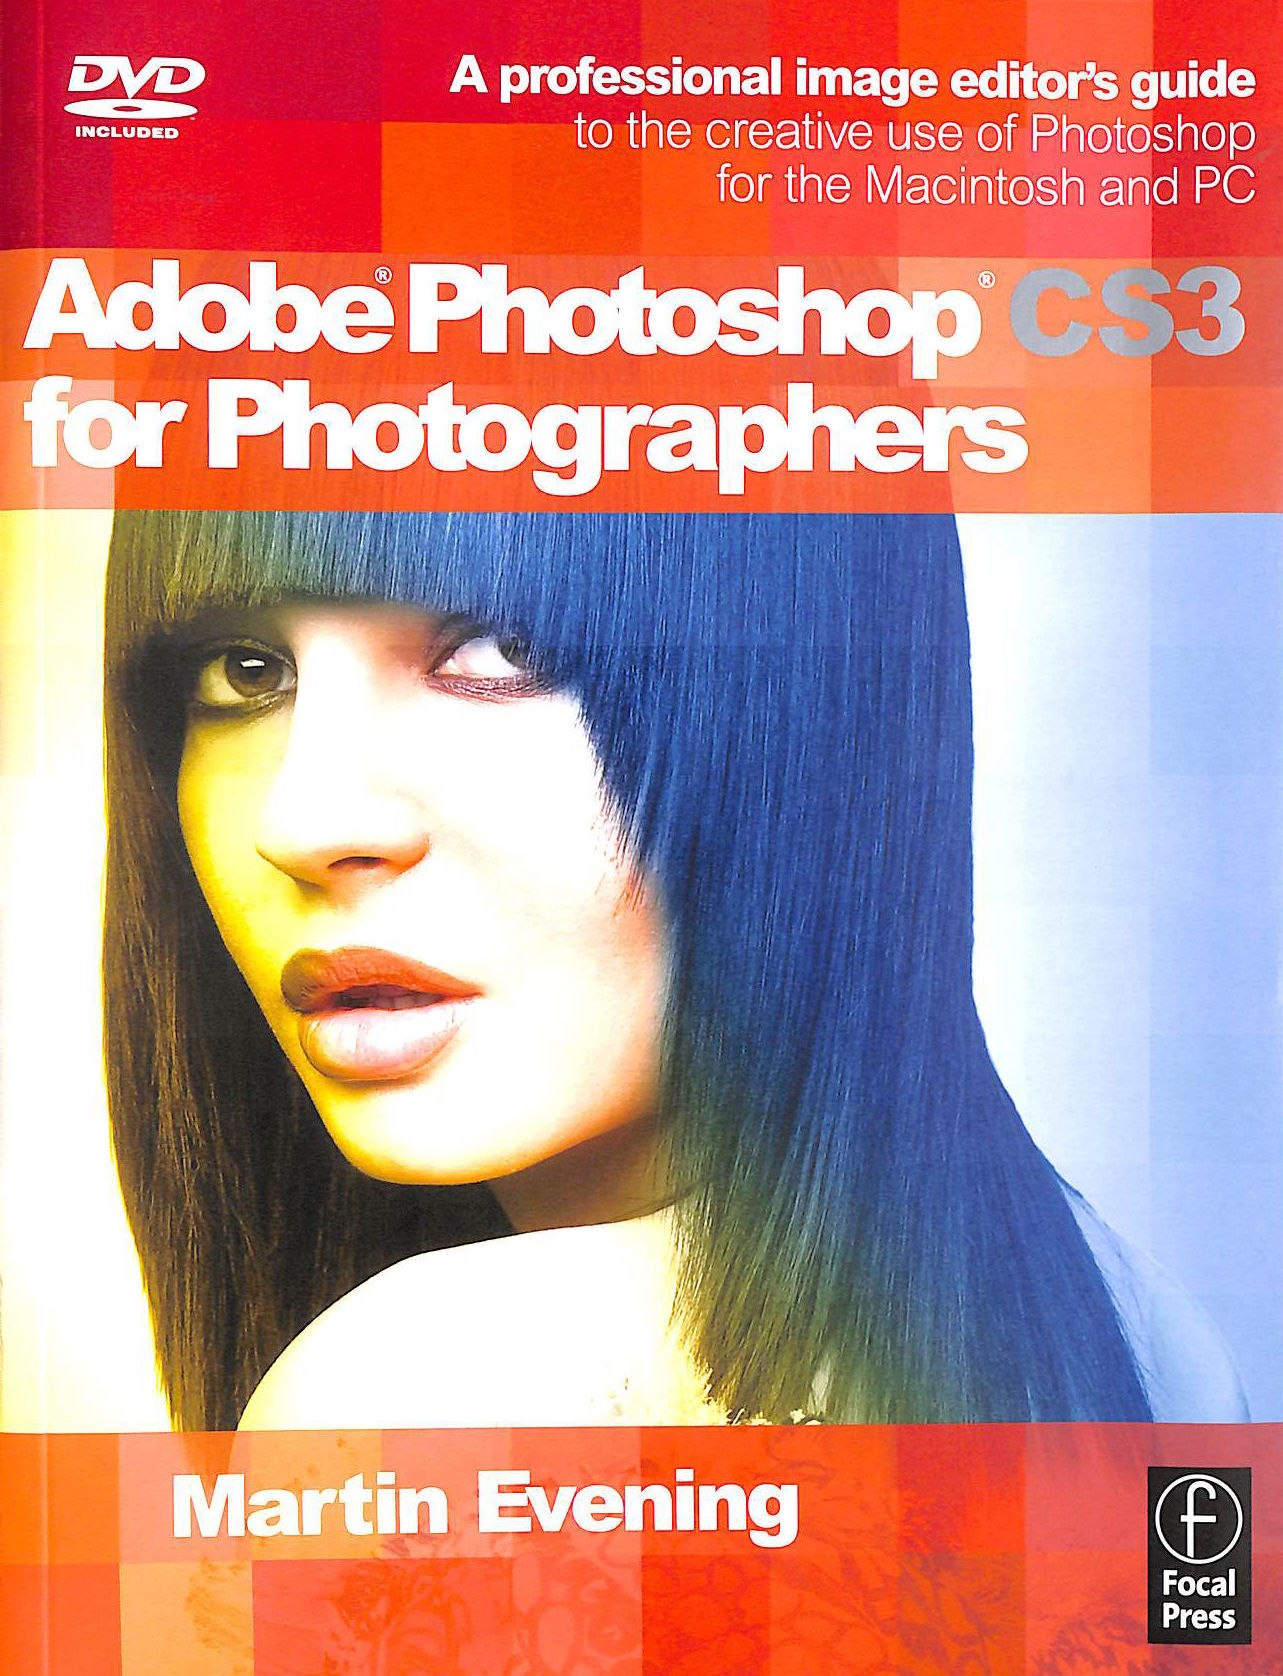 Image for Adobe Photoshop CS3 for Photographers: A Professional Image Editor's Guide to the Creative use of Photoshop for the Macintosh and PC